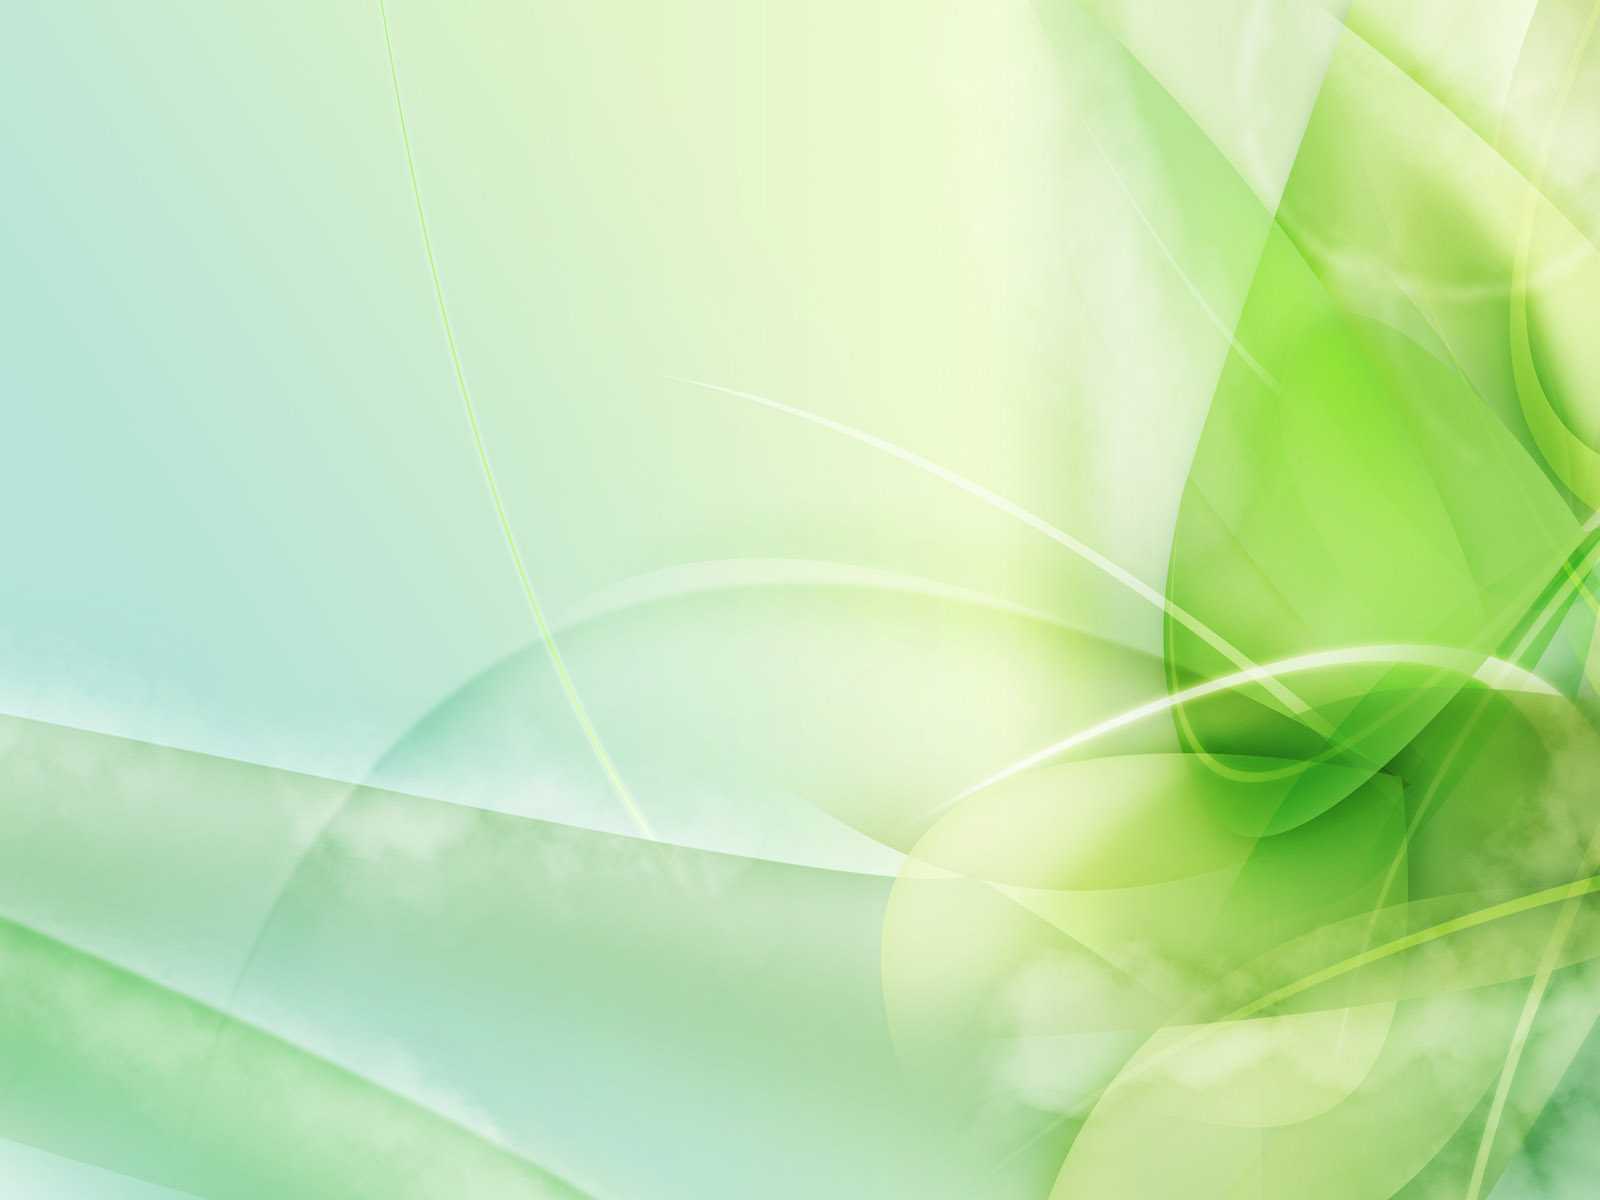 2012 Abstract Wallpapers All images are copyrighted by their 1600x1200